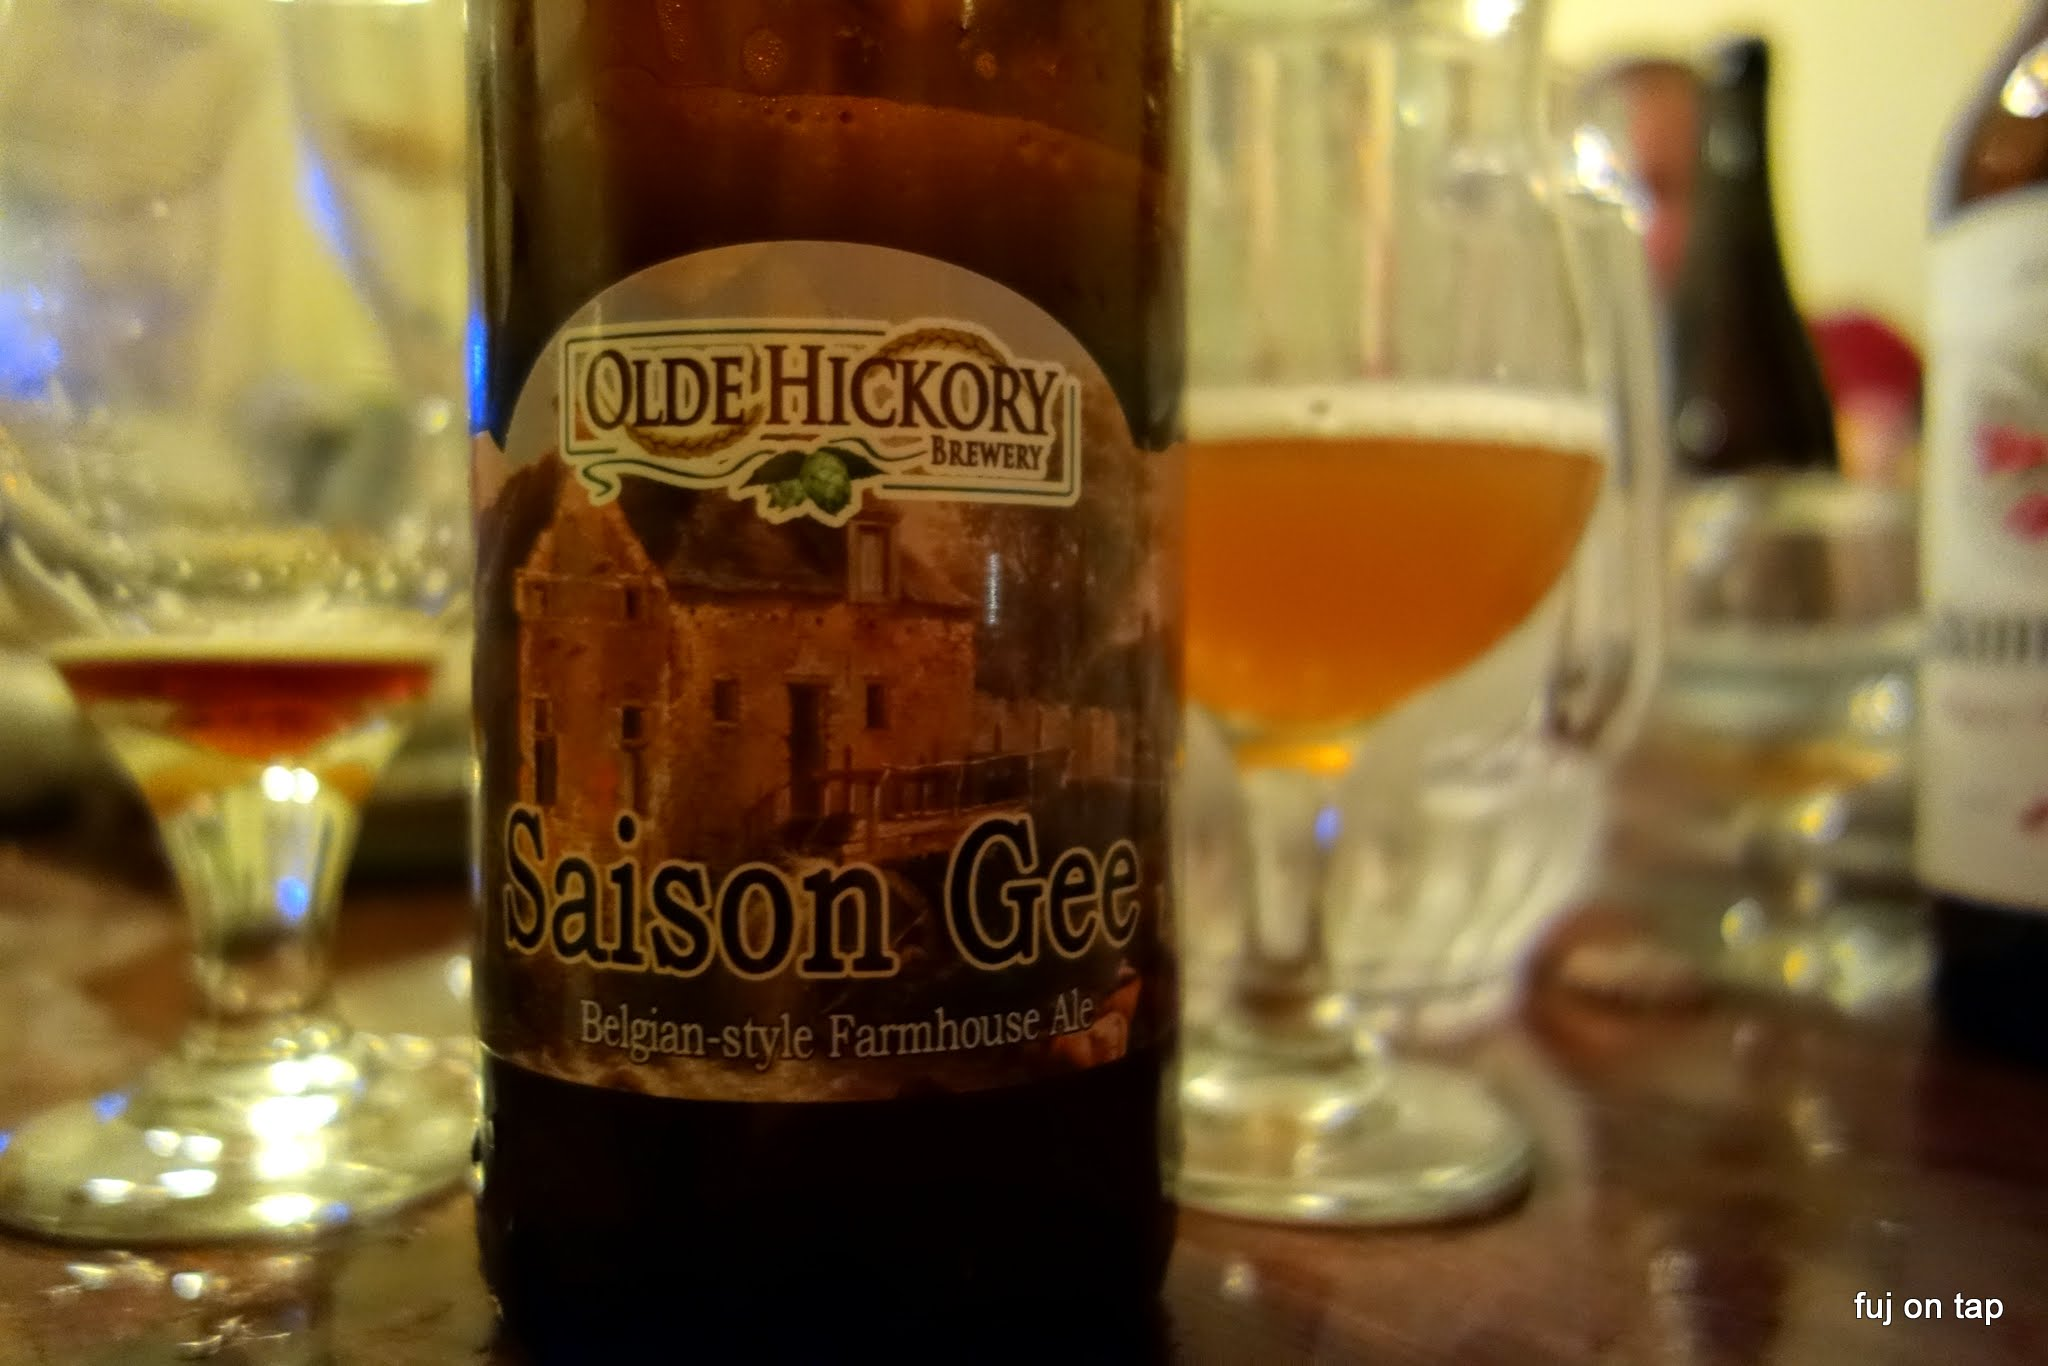 Olde Hickory Saison Gee